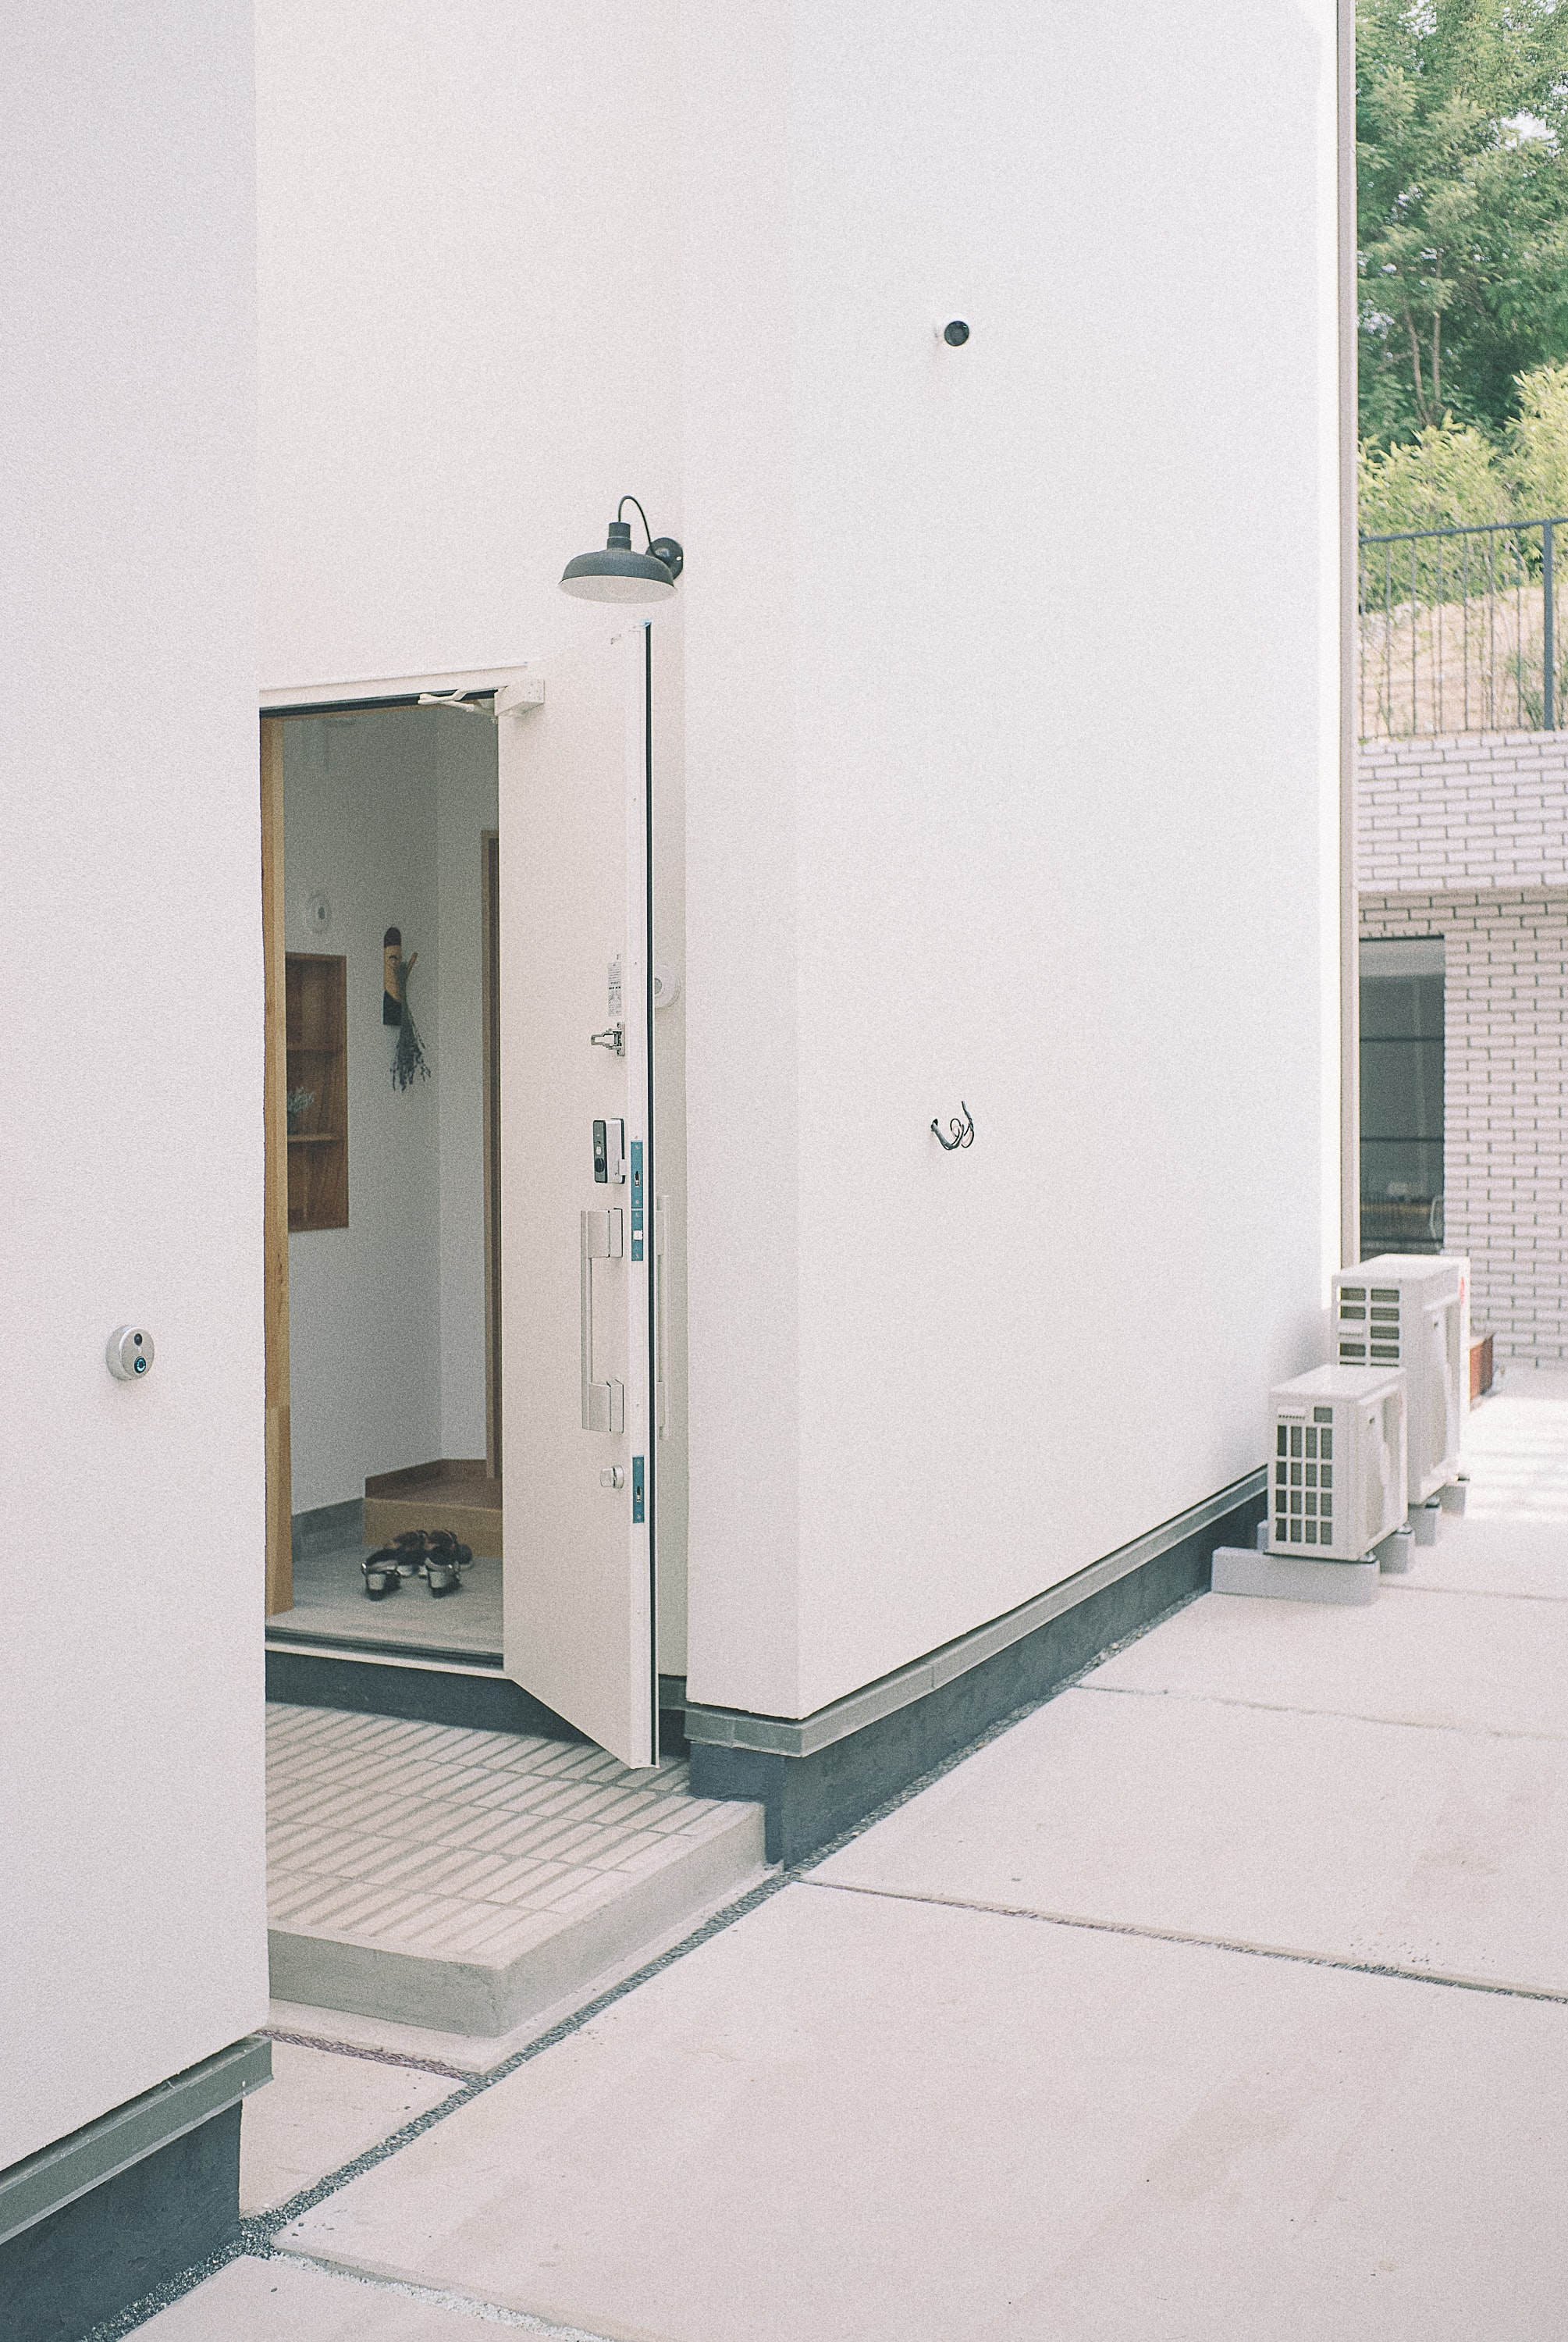 white concrete building with open door at daytime